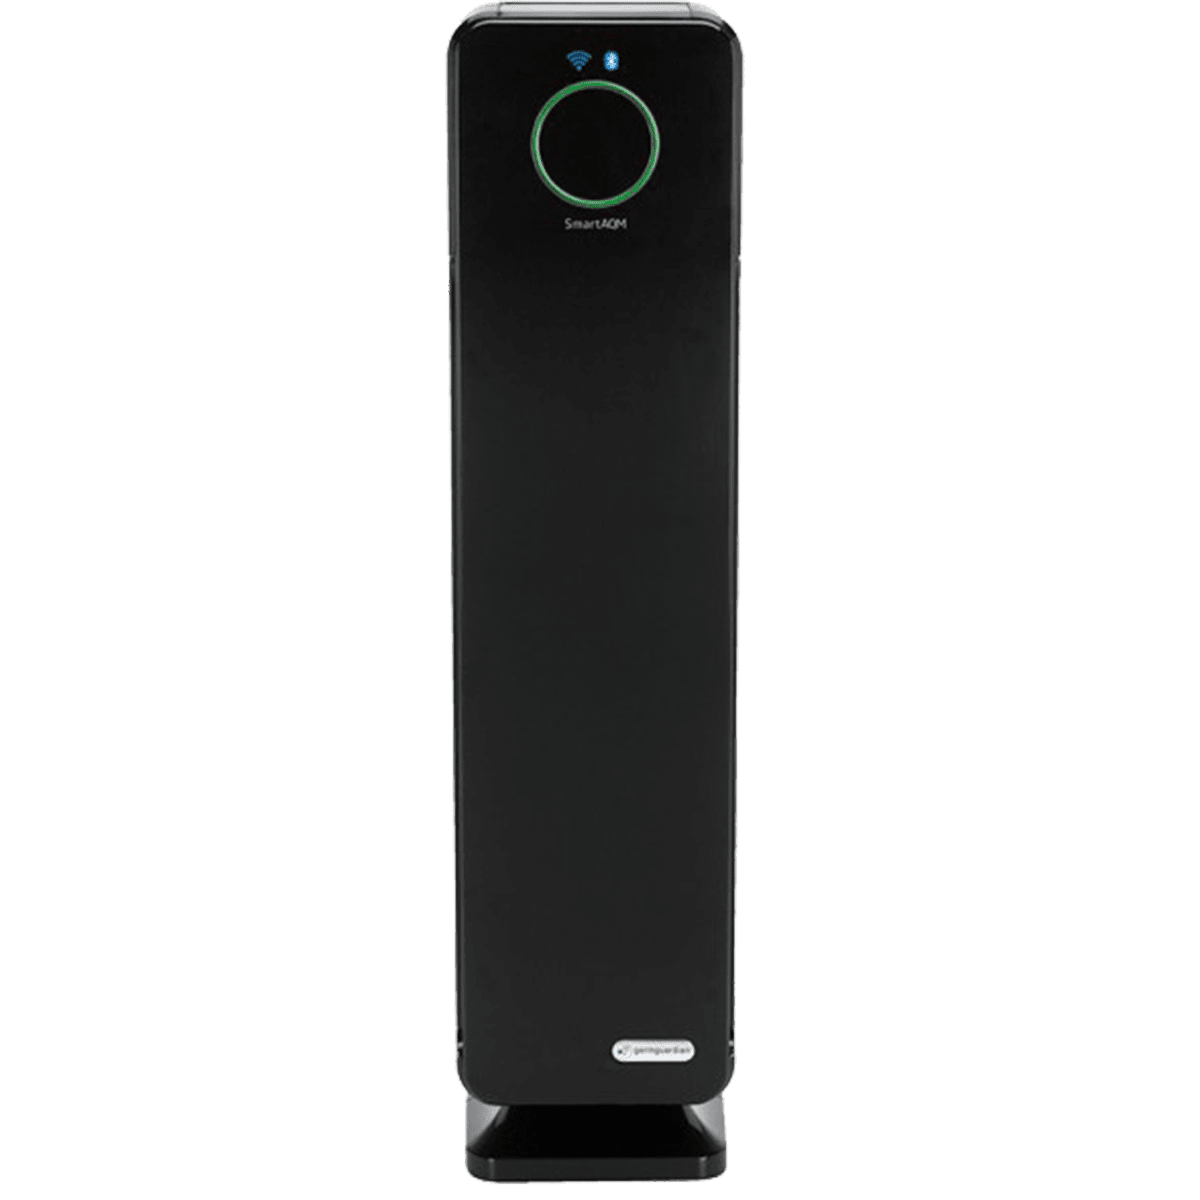 GermGuardian 28 In. 4-in-1 Wifi Smart Tower Air Purifier (CDAP5500BCA) ge7100